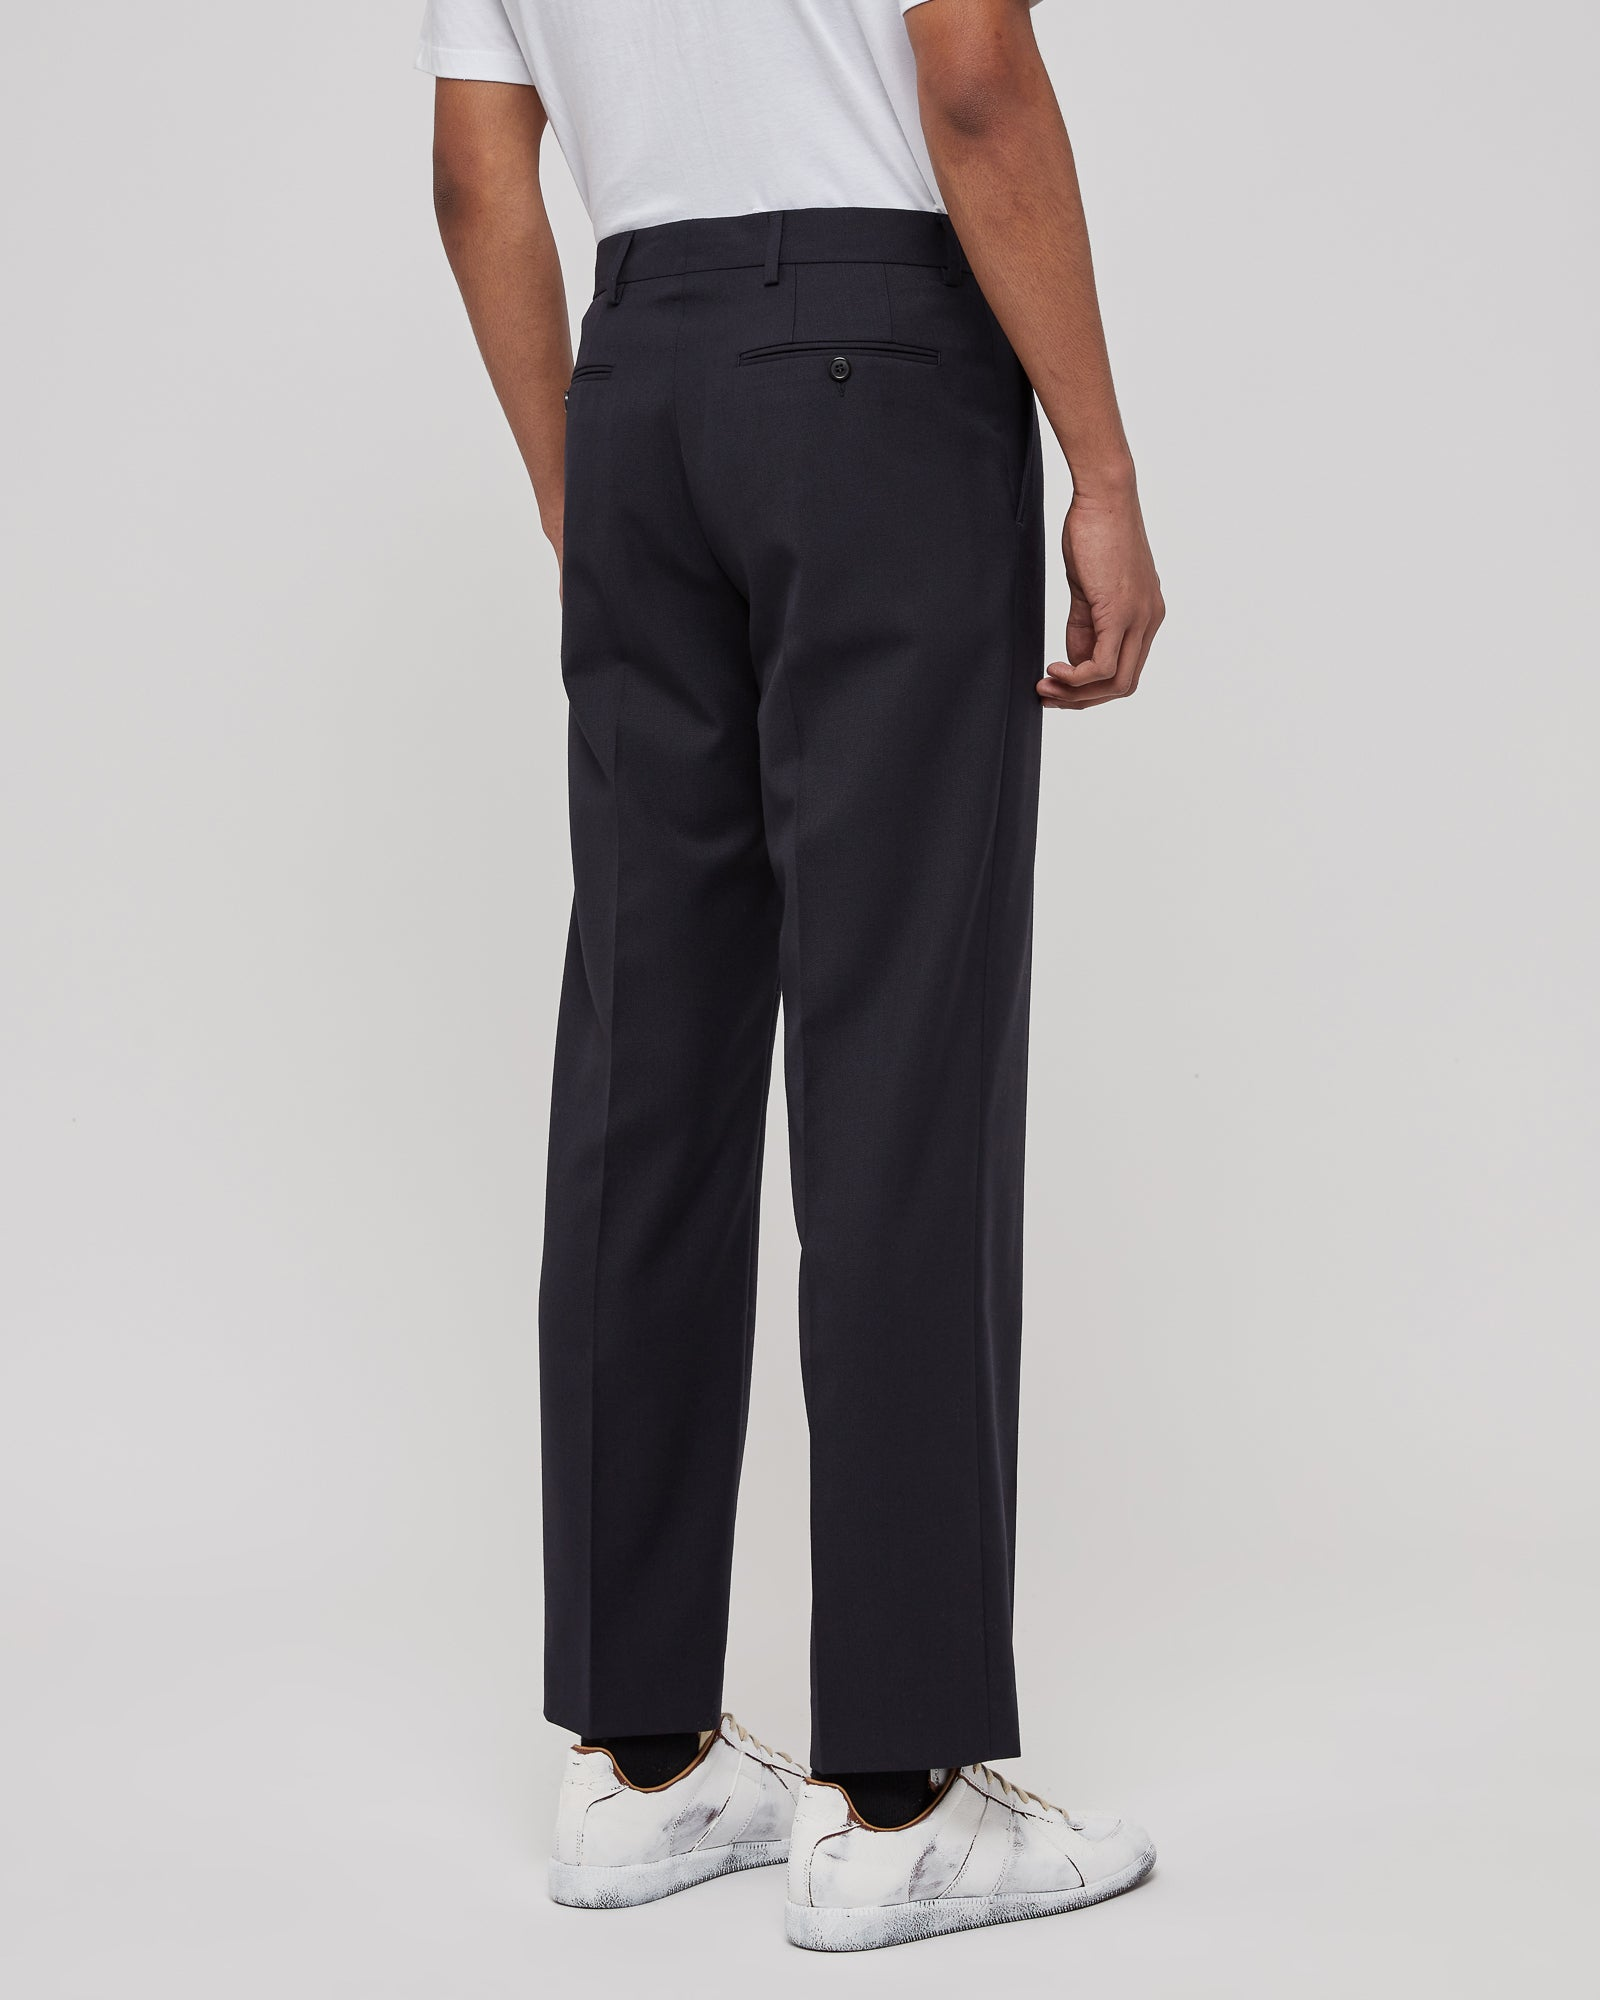 Pennel Pants in Navy